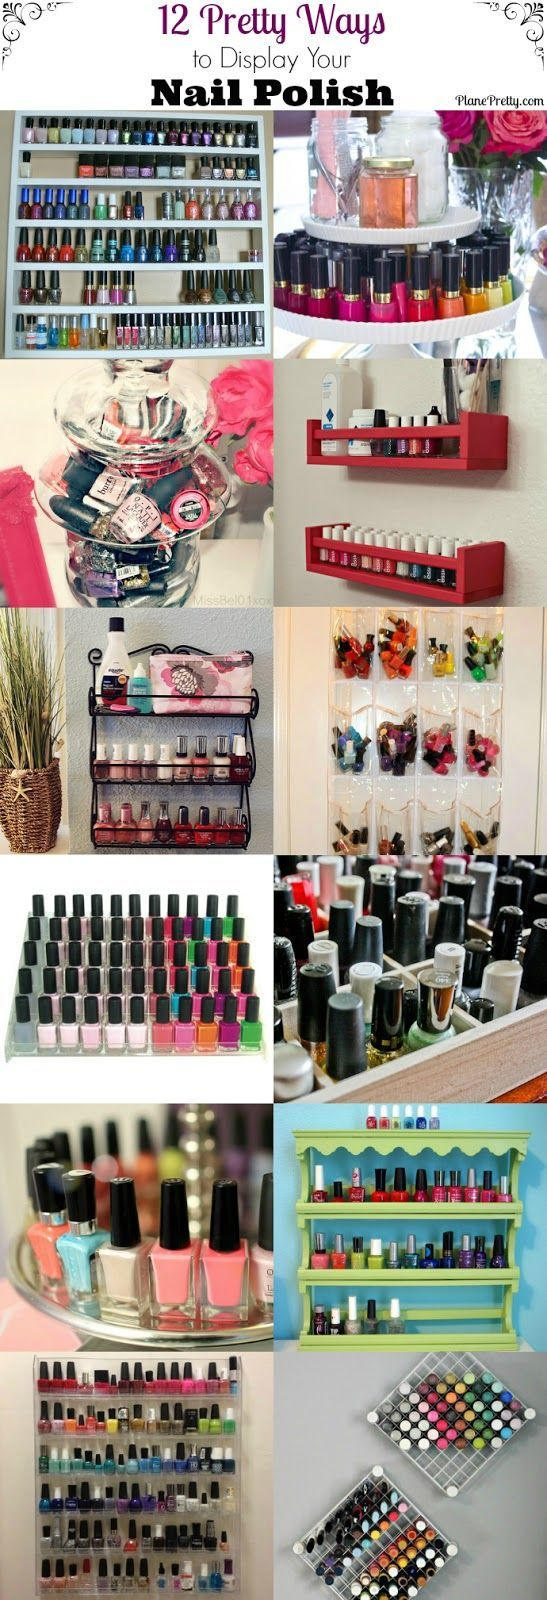 Plane Pretty | Fashion, Travel and Lifestyle Blog: Nail Polish Organization planepretty.com